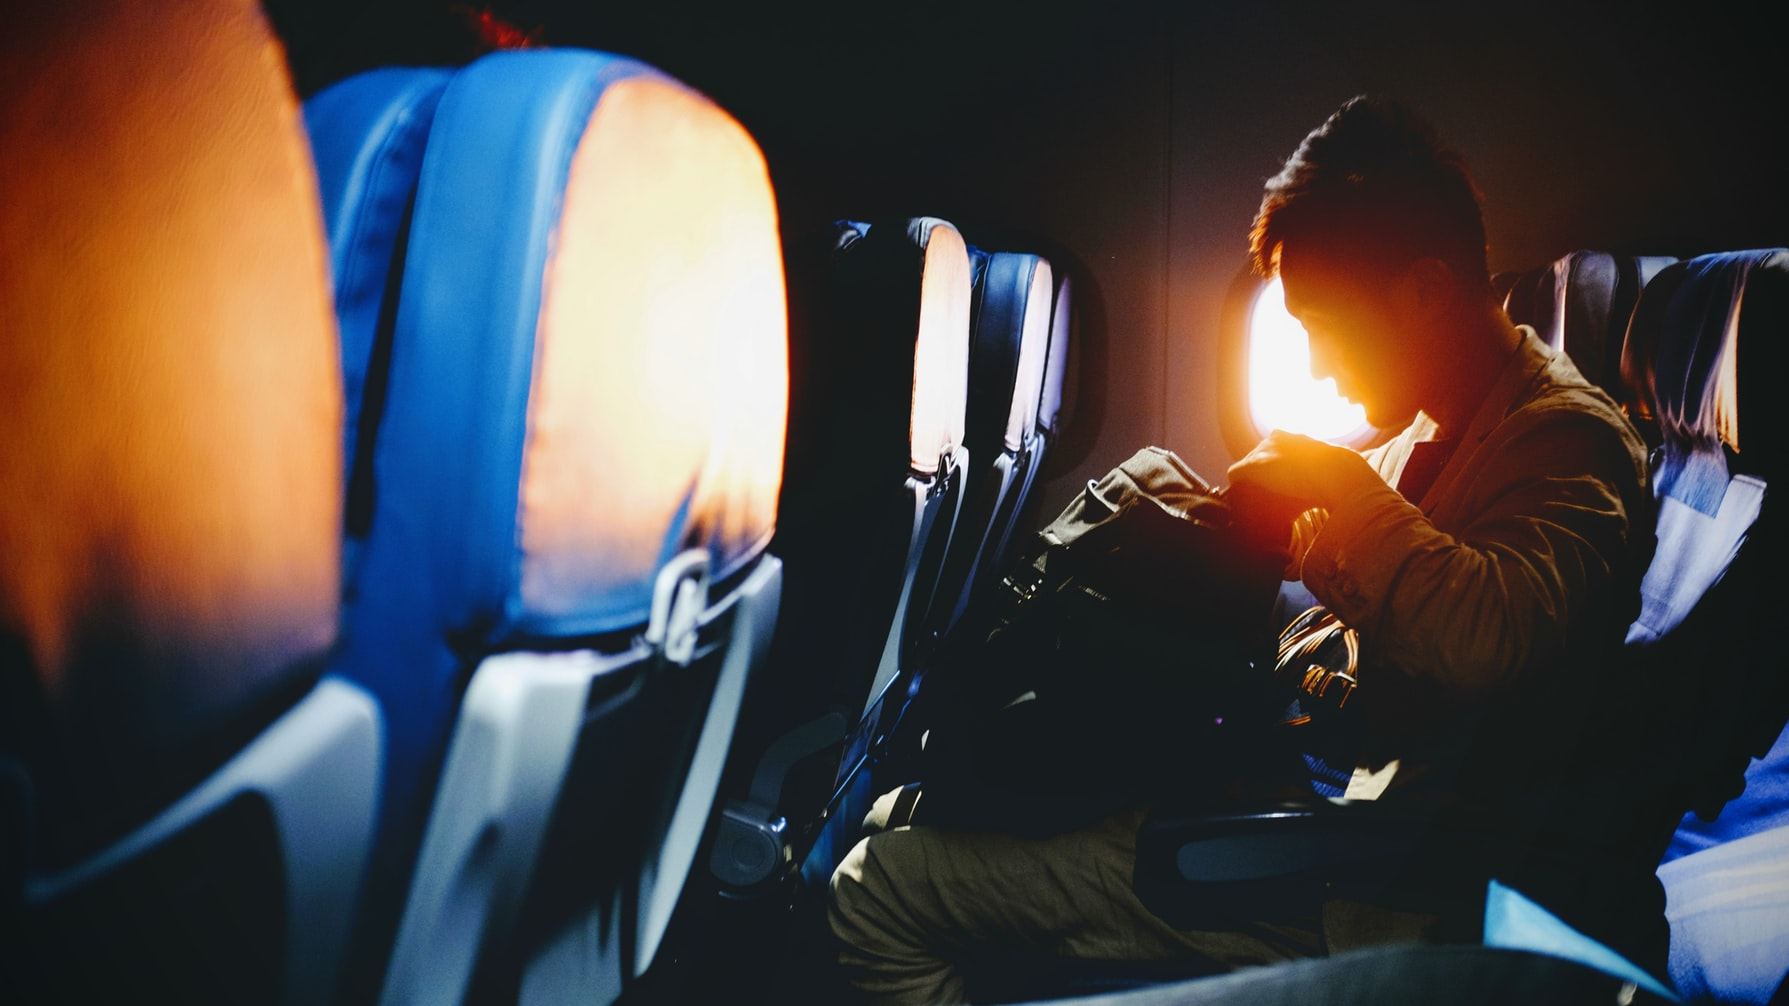 shrinking airline seat